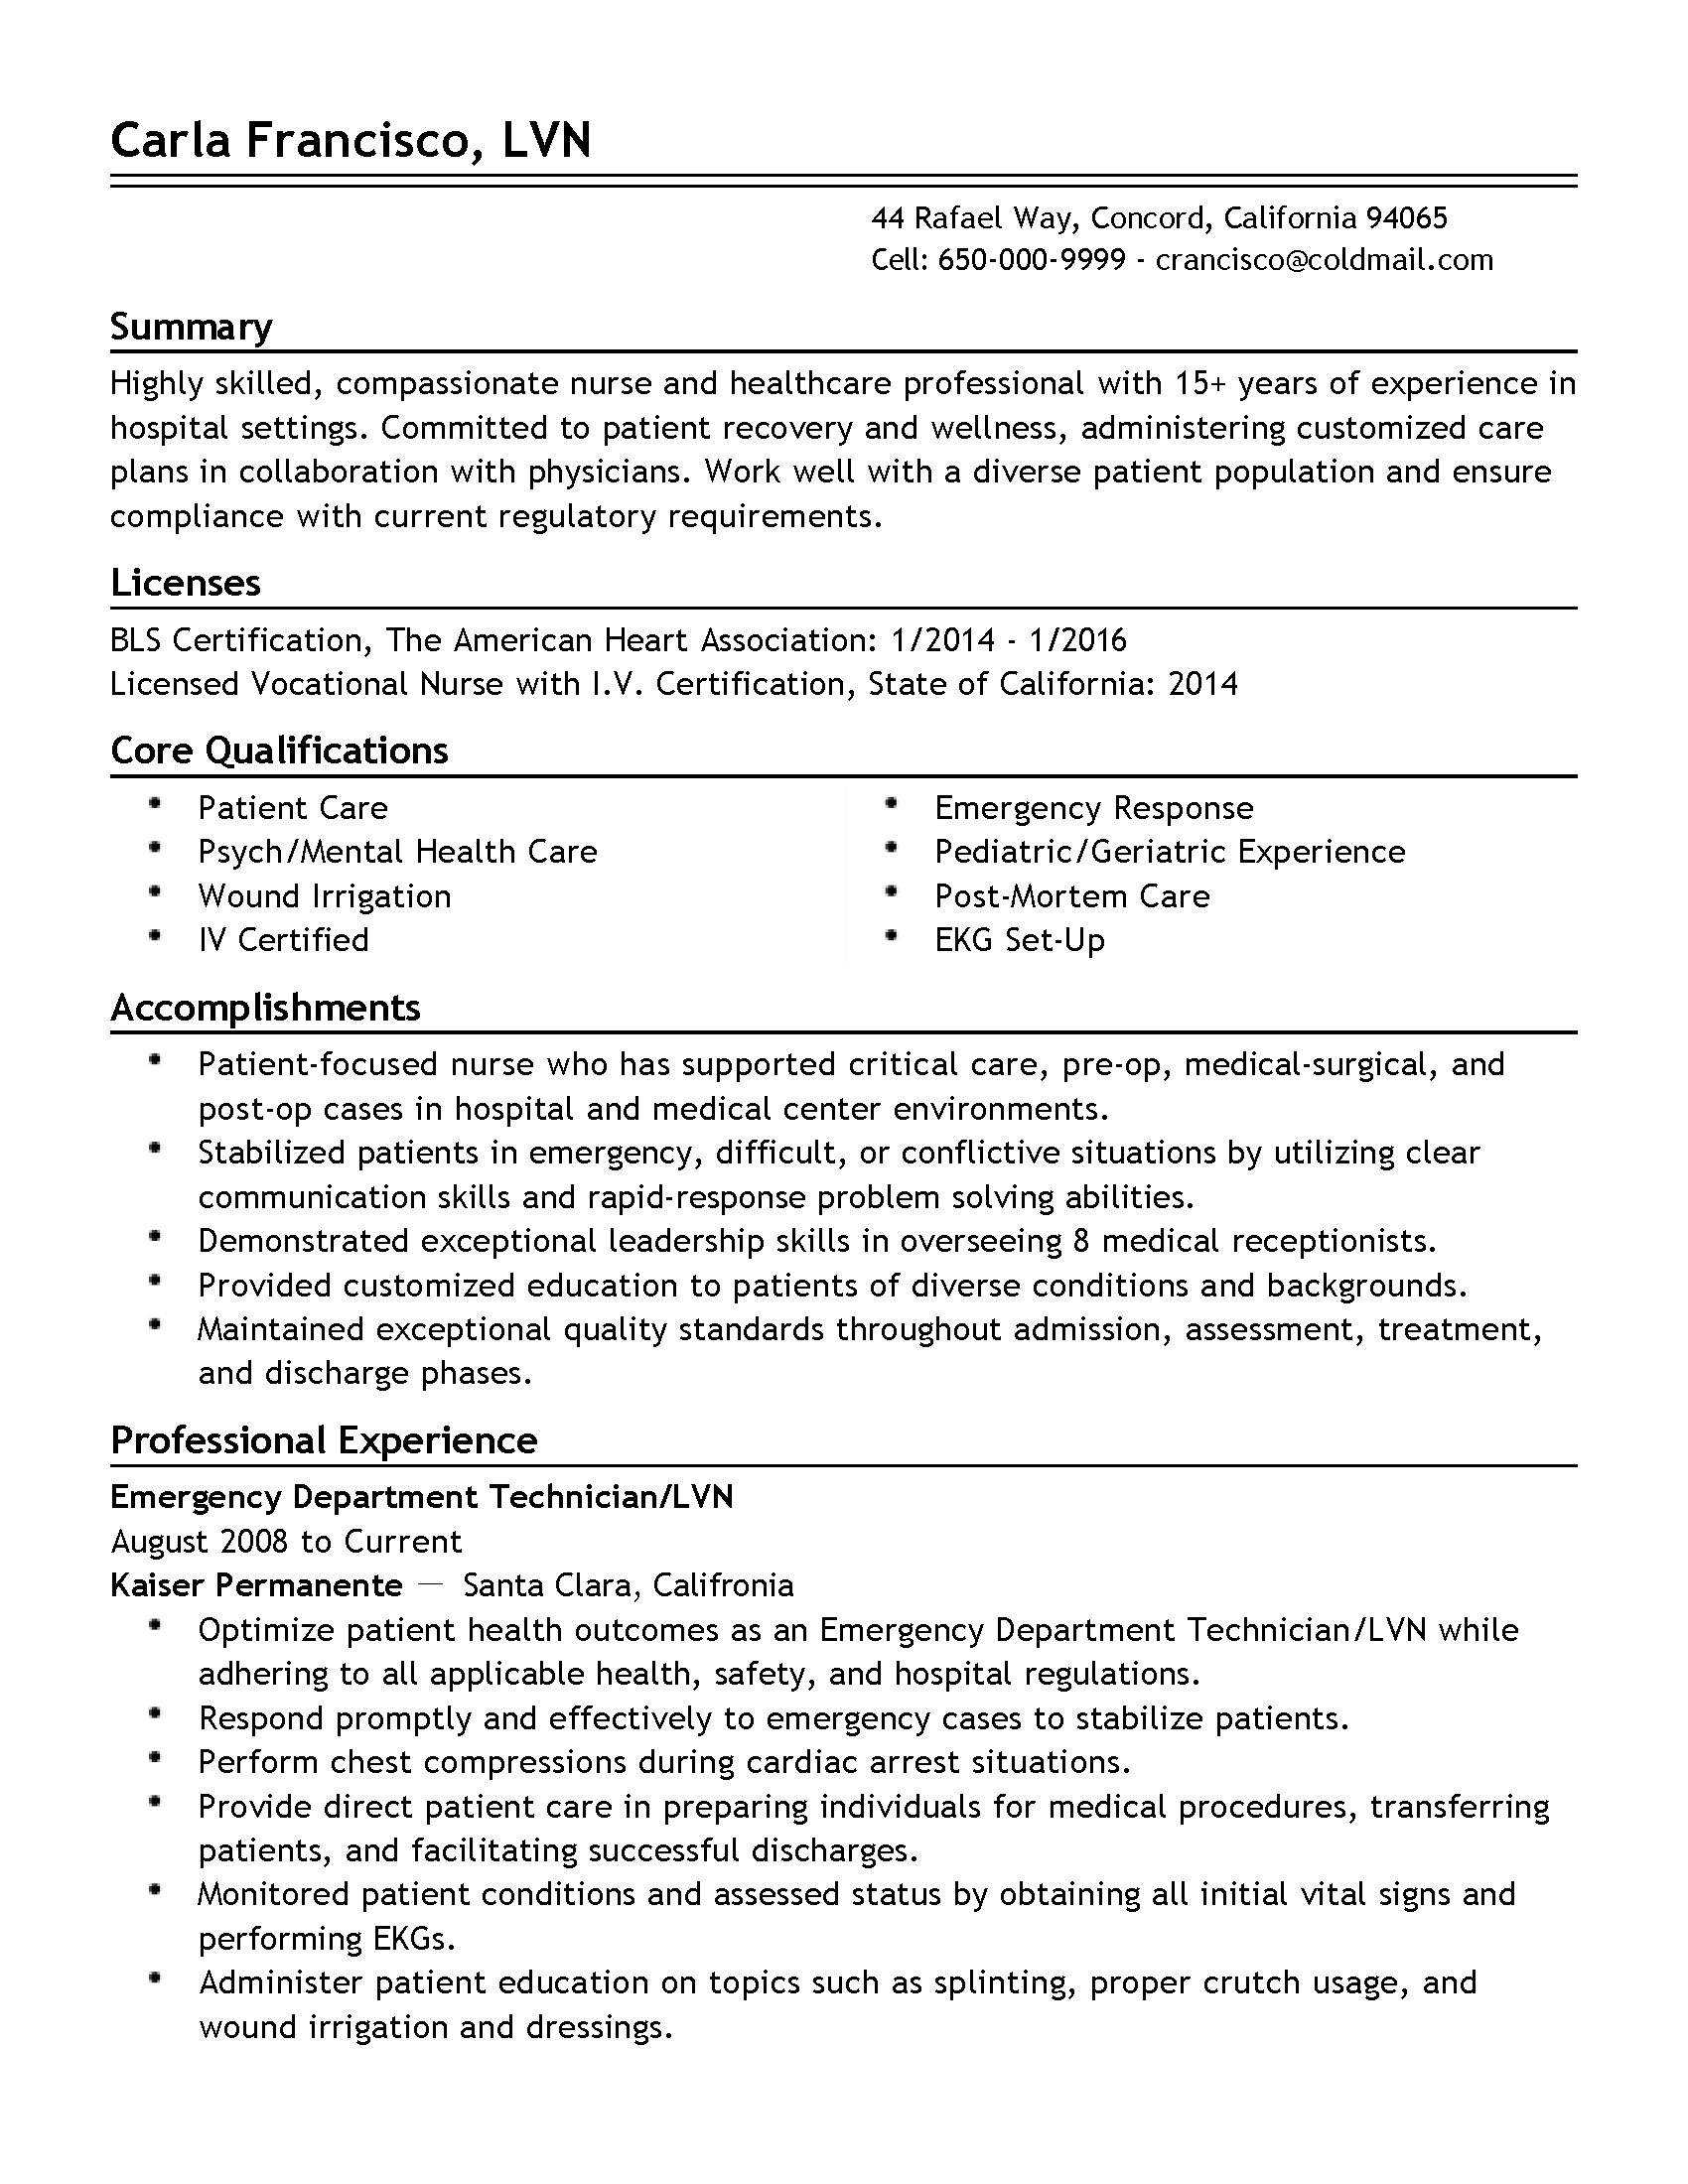 Resume Templates: Emergency Department Technician. Build My Resume